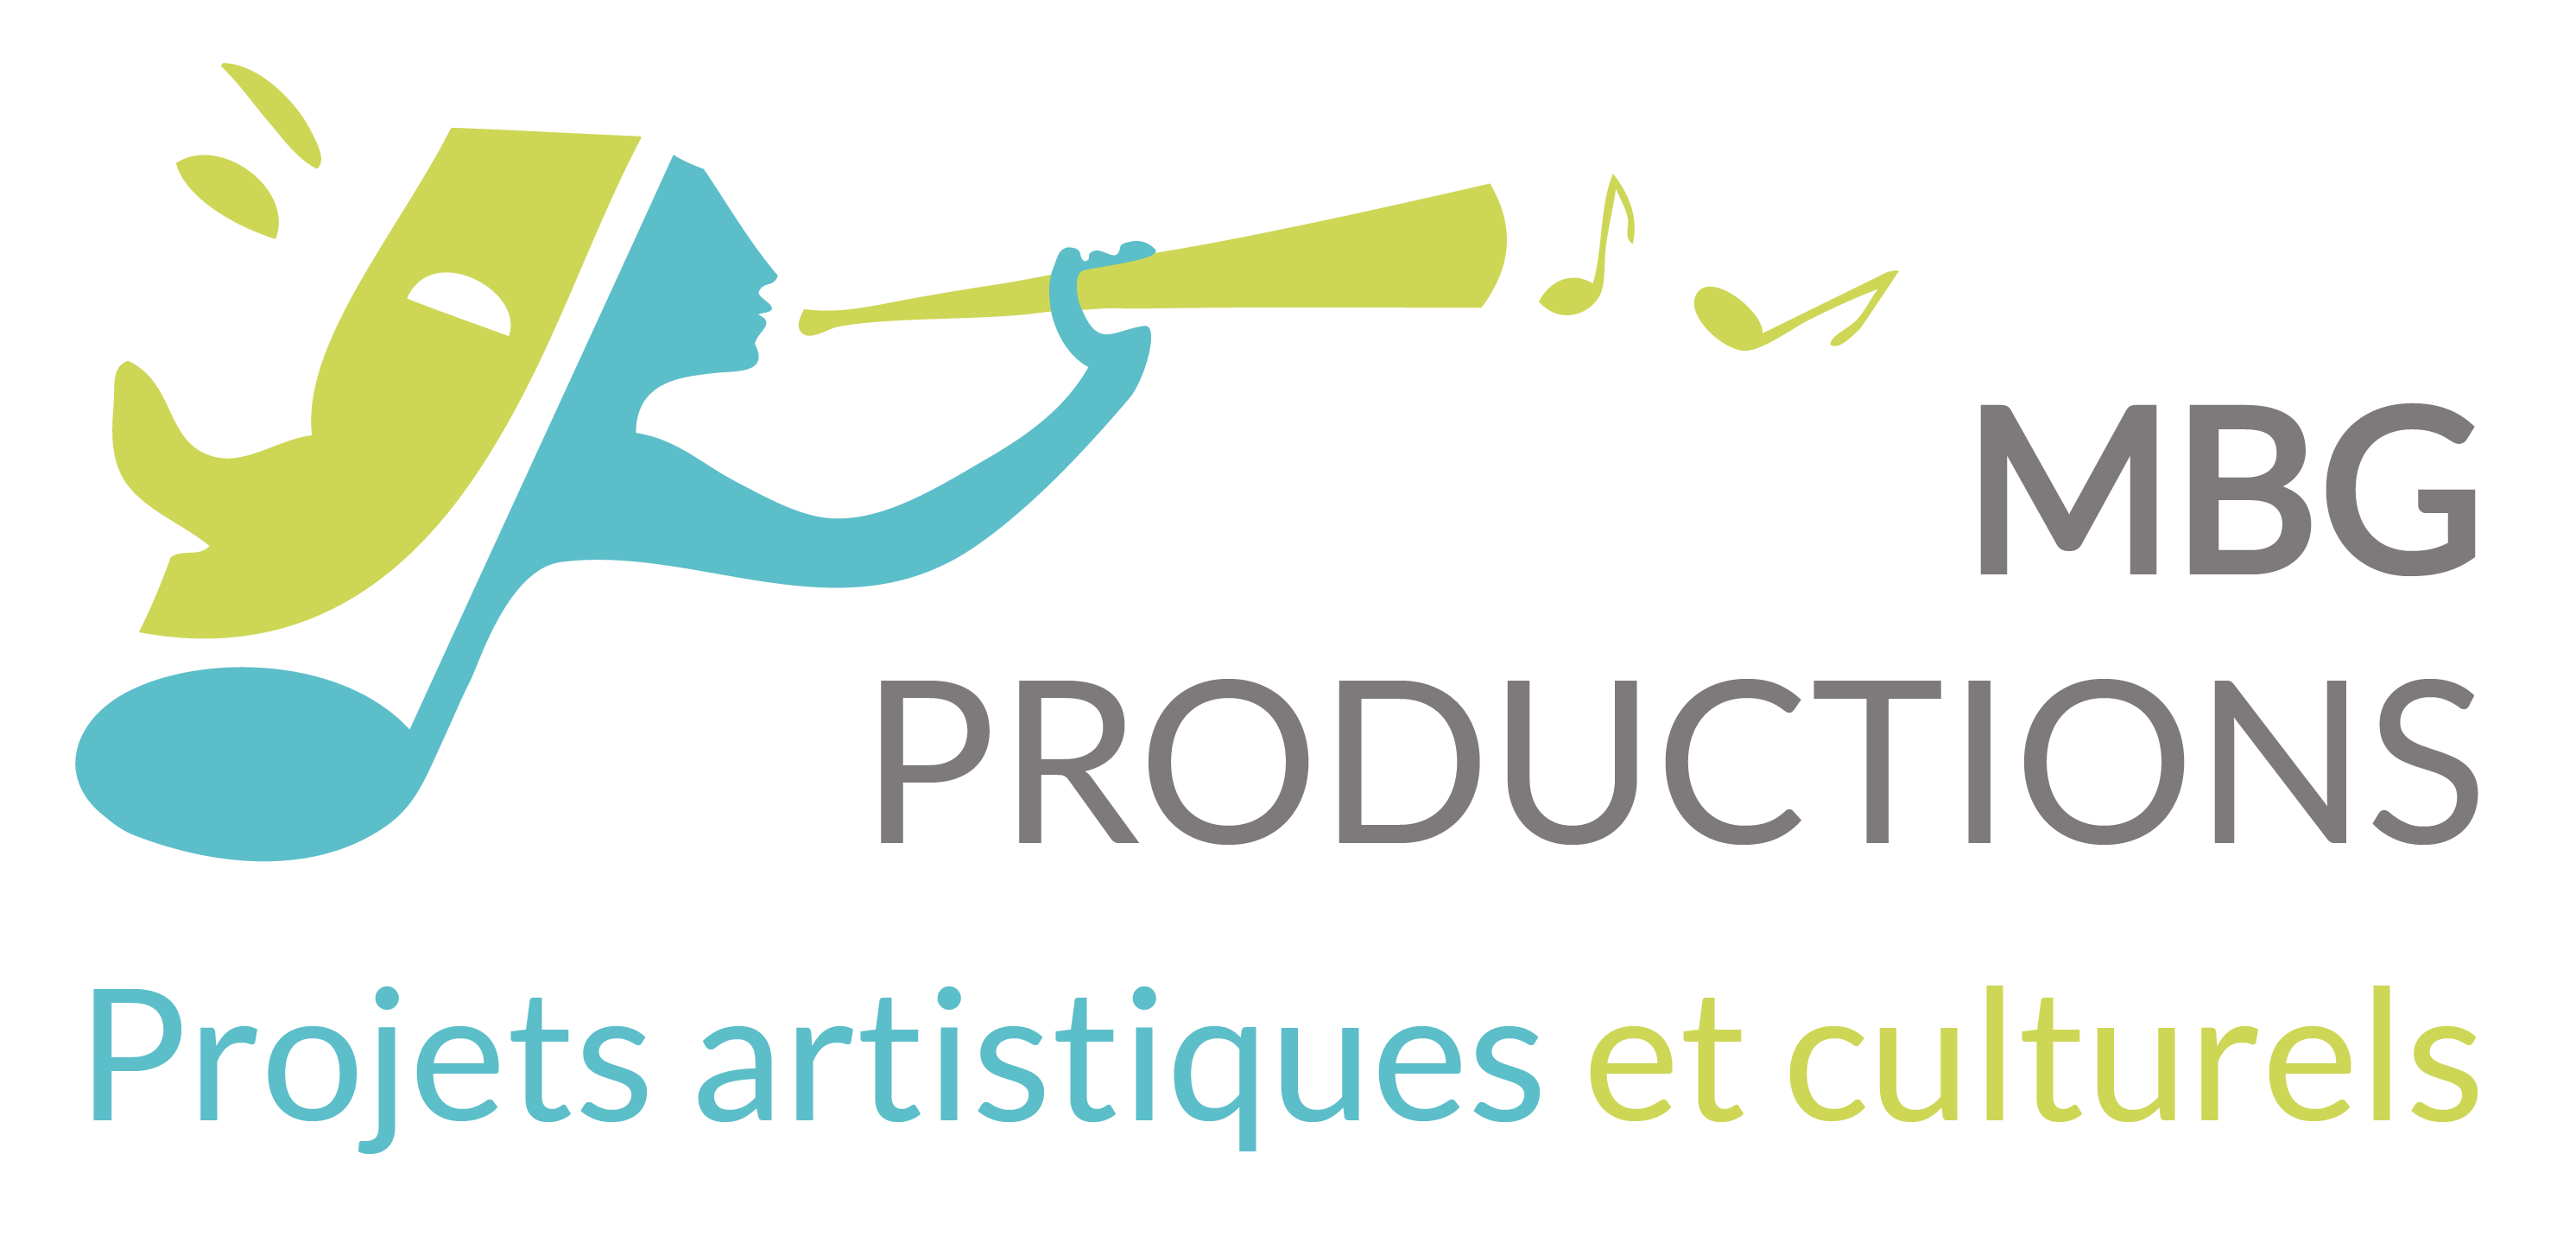 MBG Productions accompagnement d'artistes